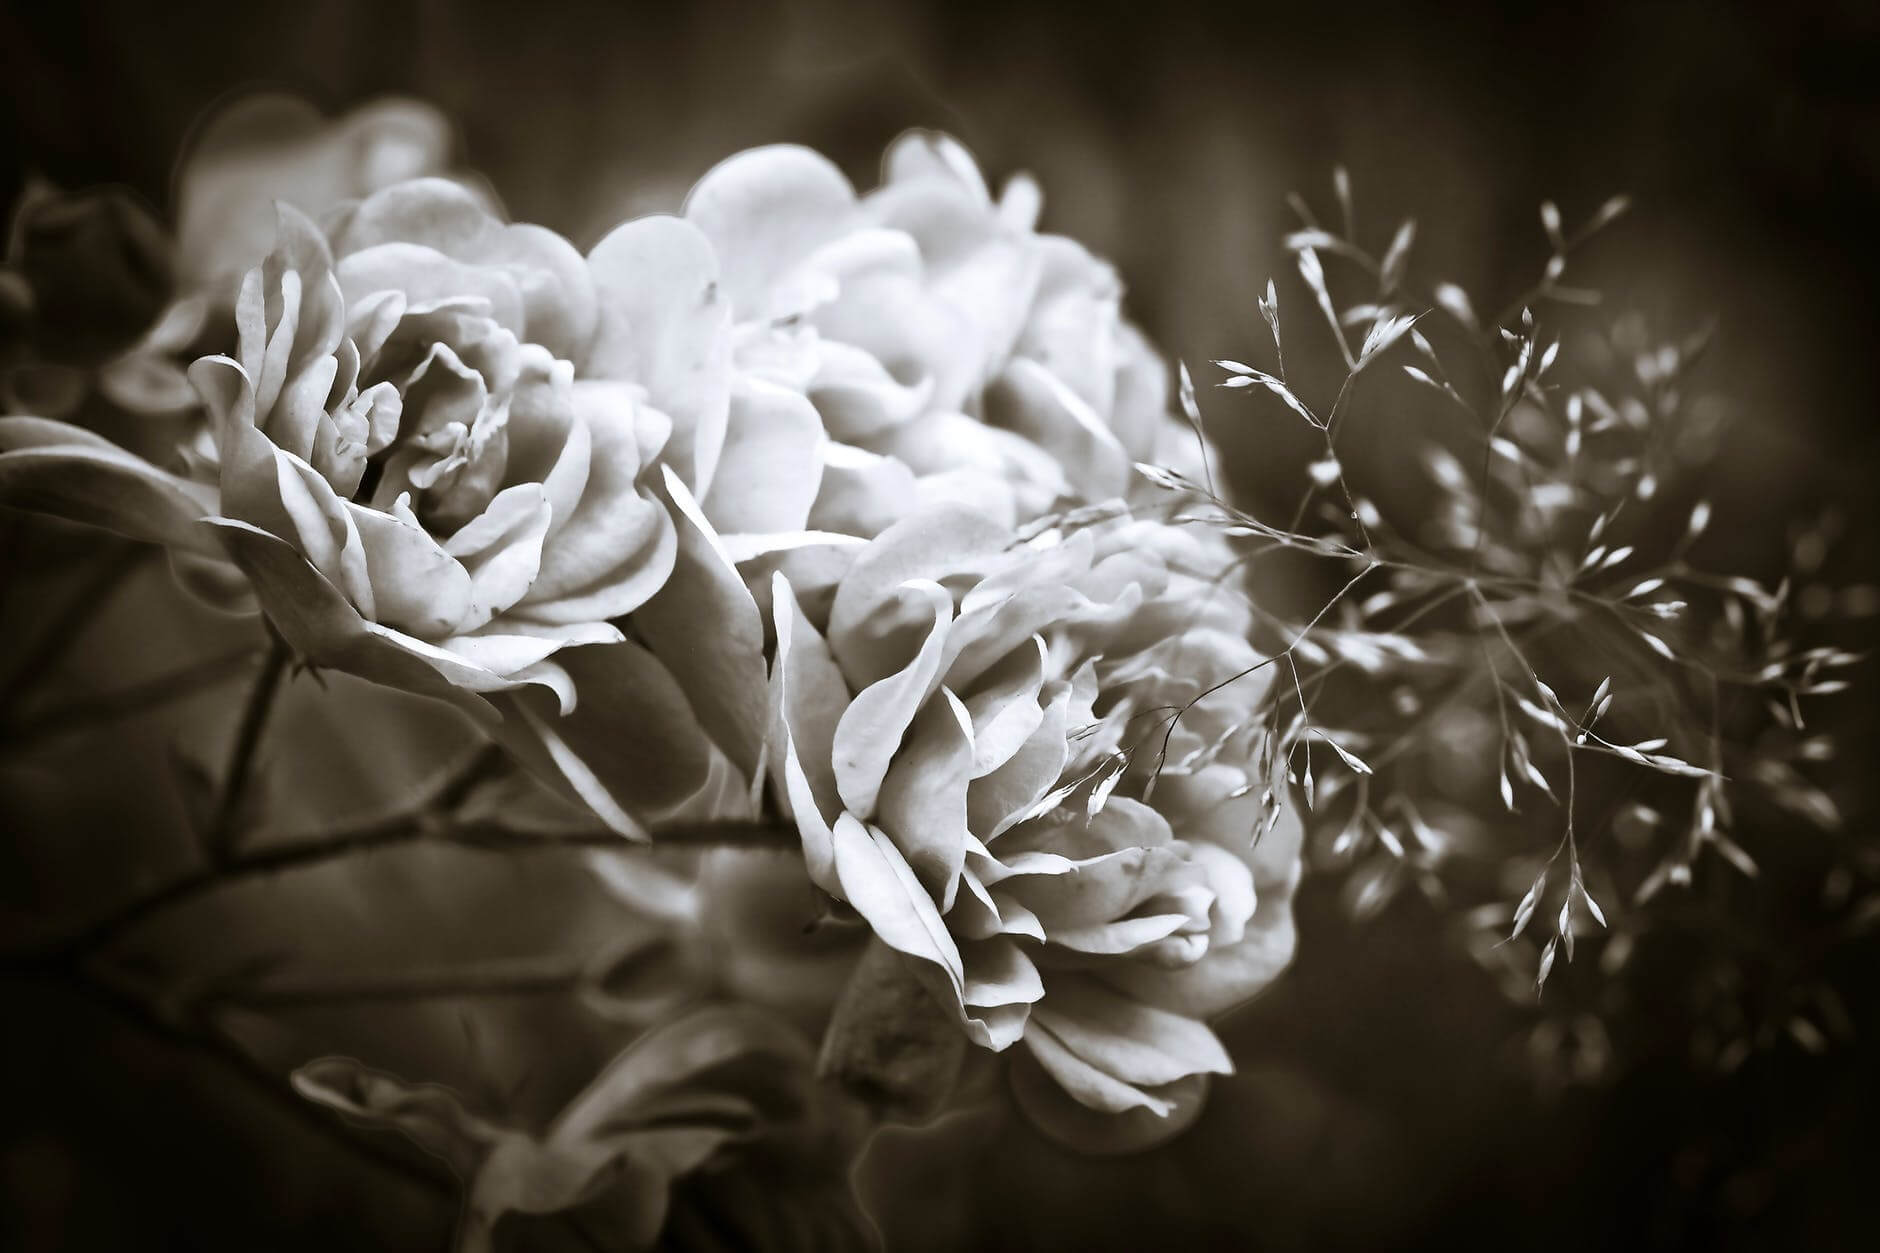 how to take black and white pictures 28 (1)